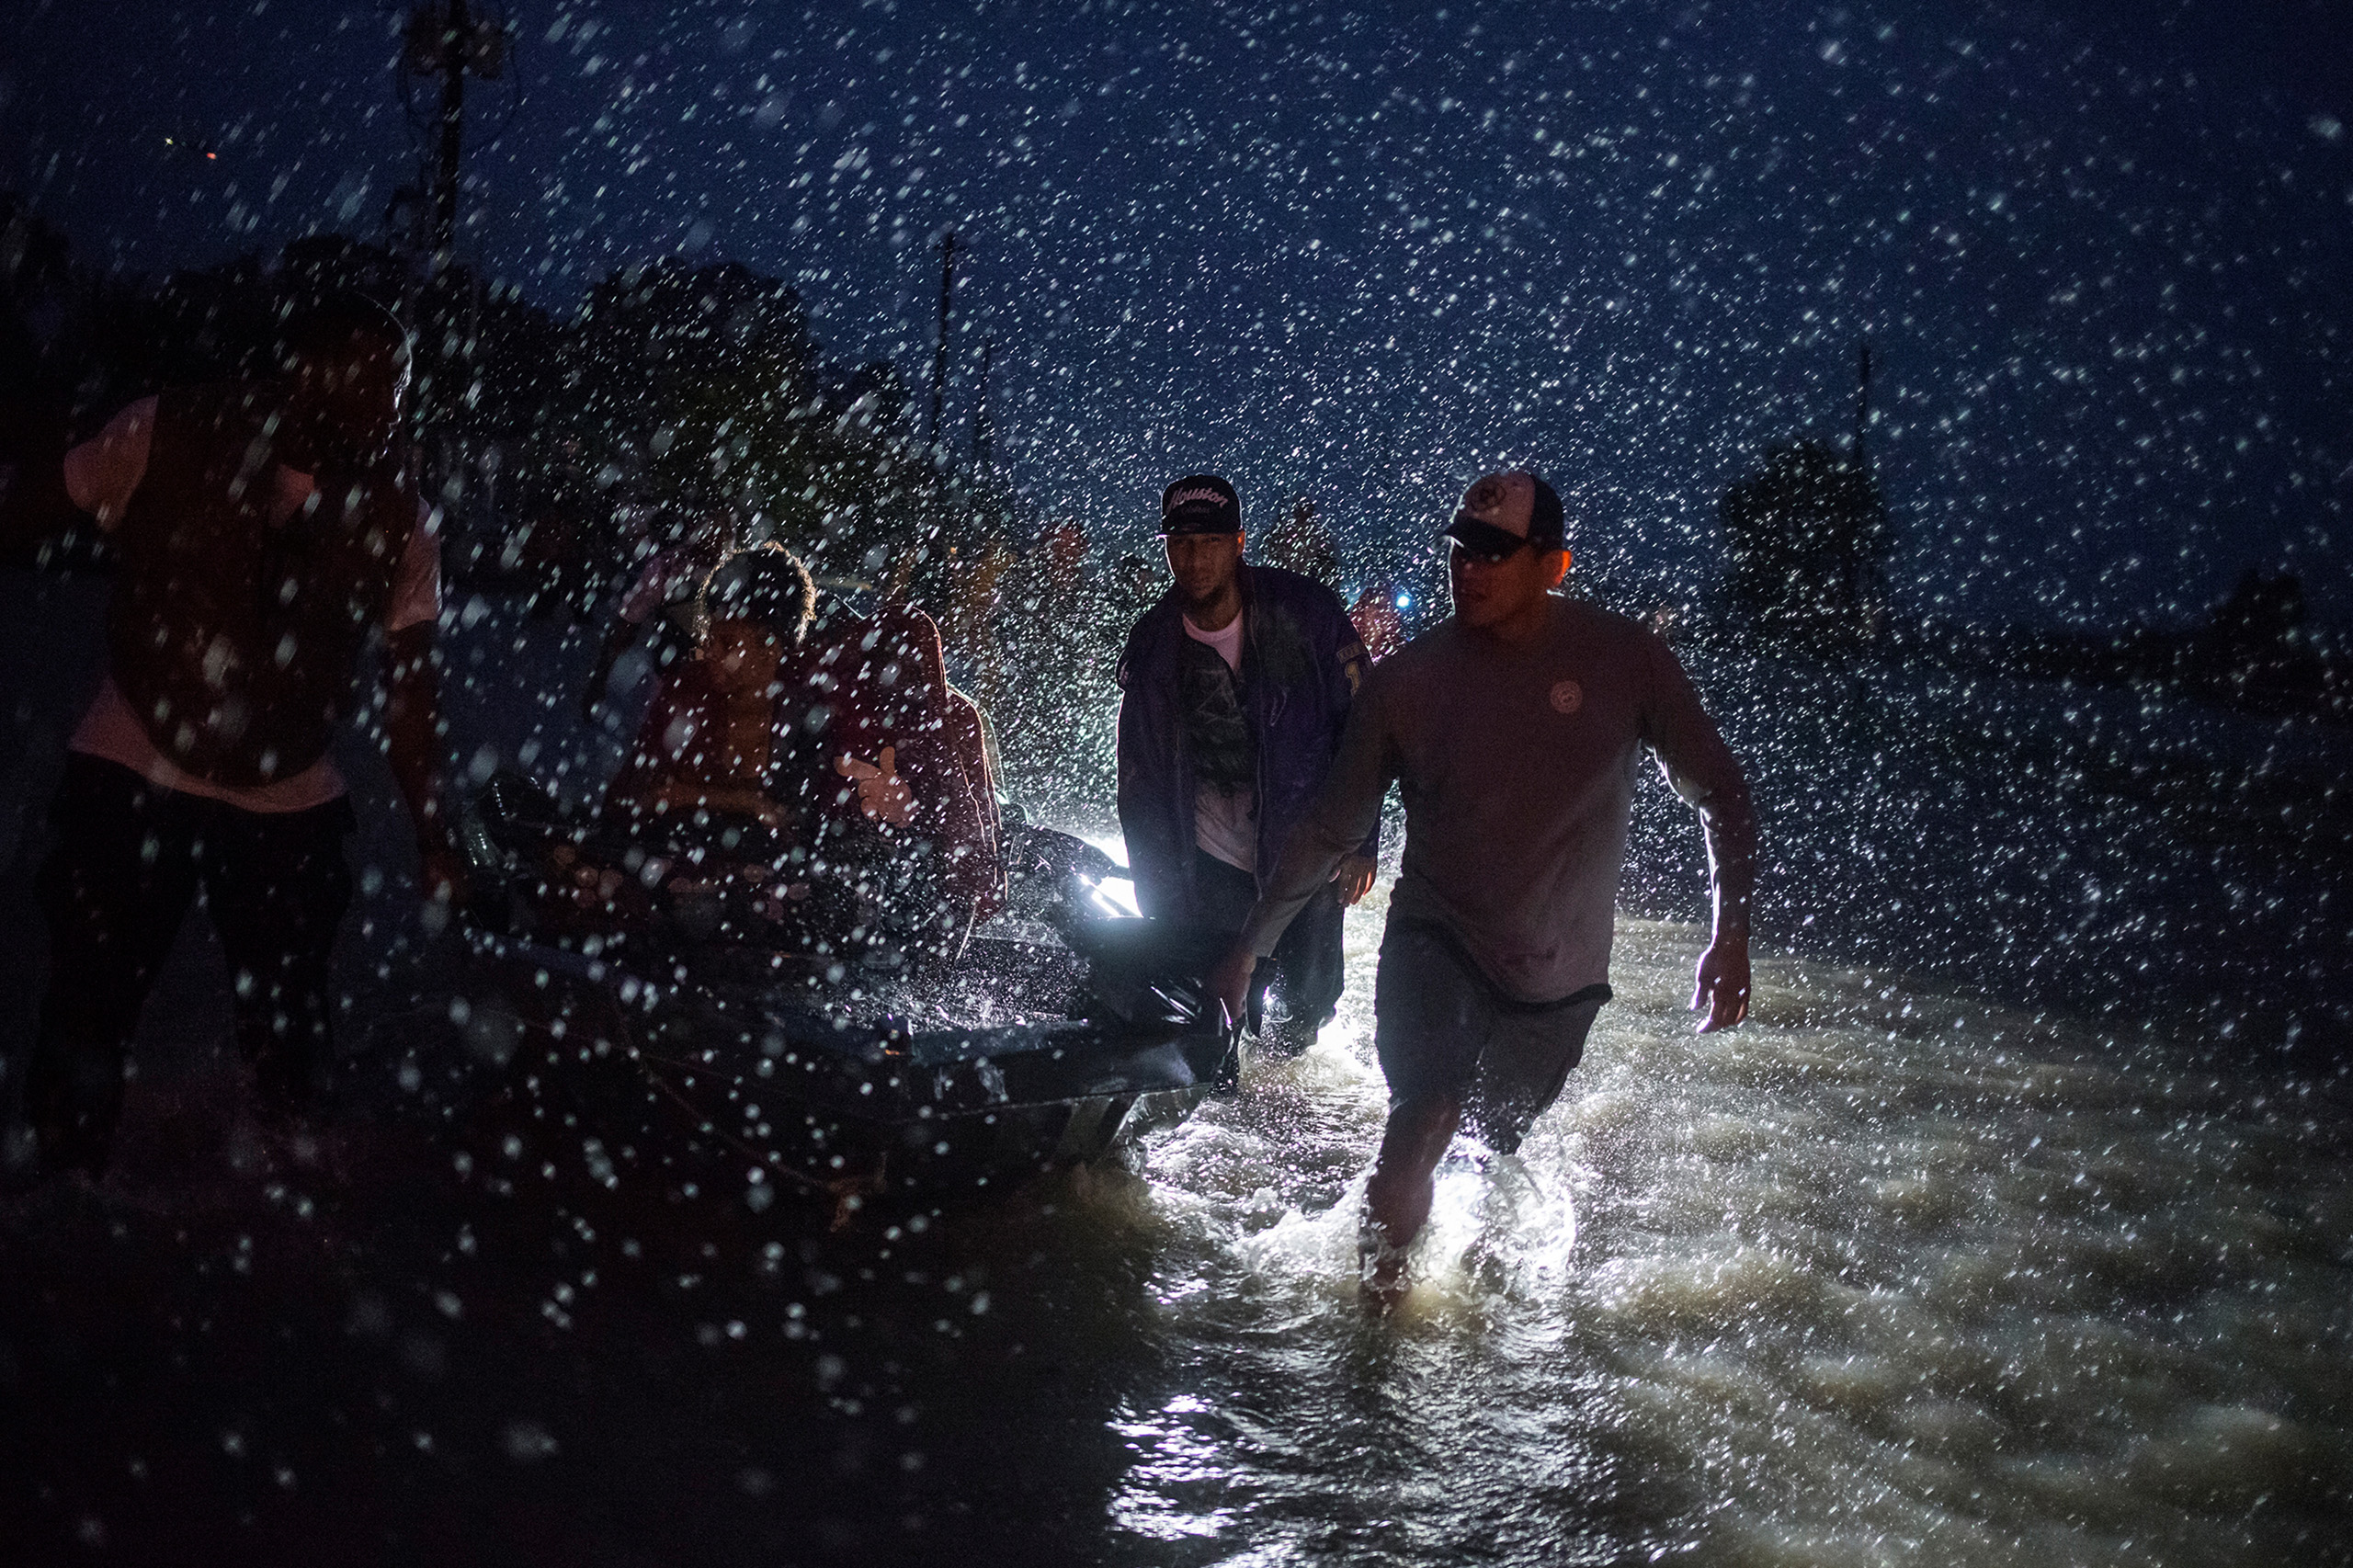 Samaritans help push a boat with evacuees to high ground during a rain storm caused by Tropical Storm Harvey along Tidwell Road in east Houston, on Aug. 28, 2017.